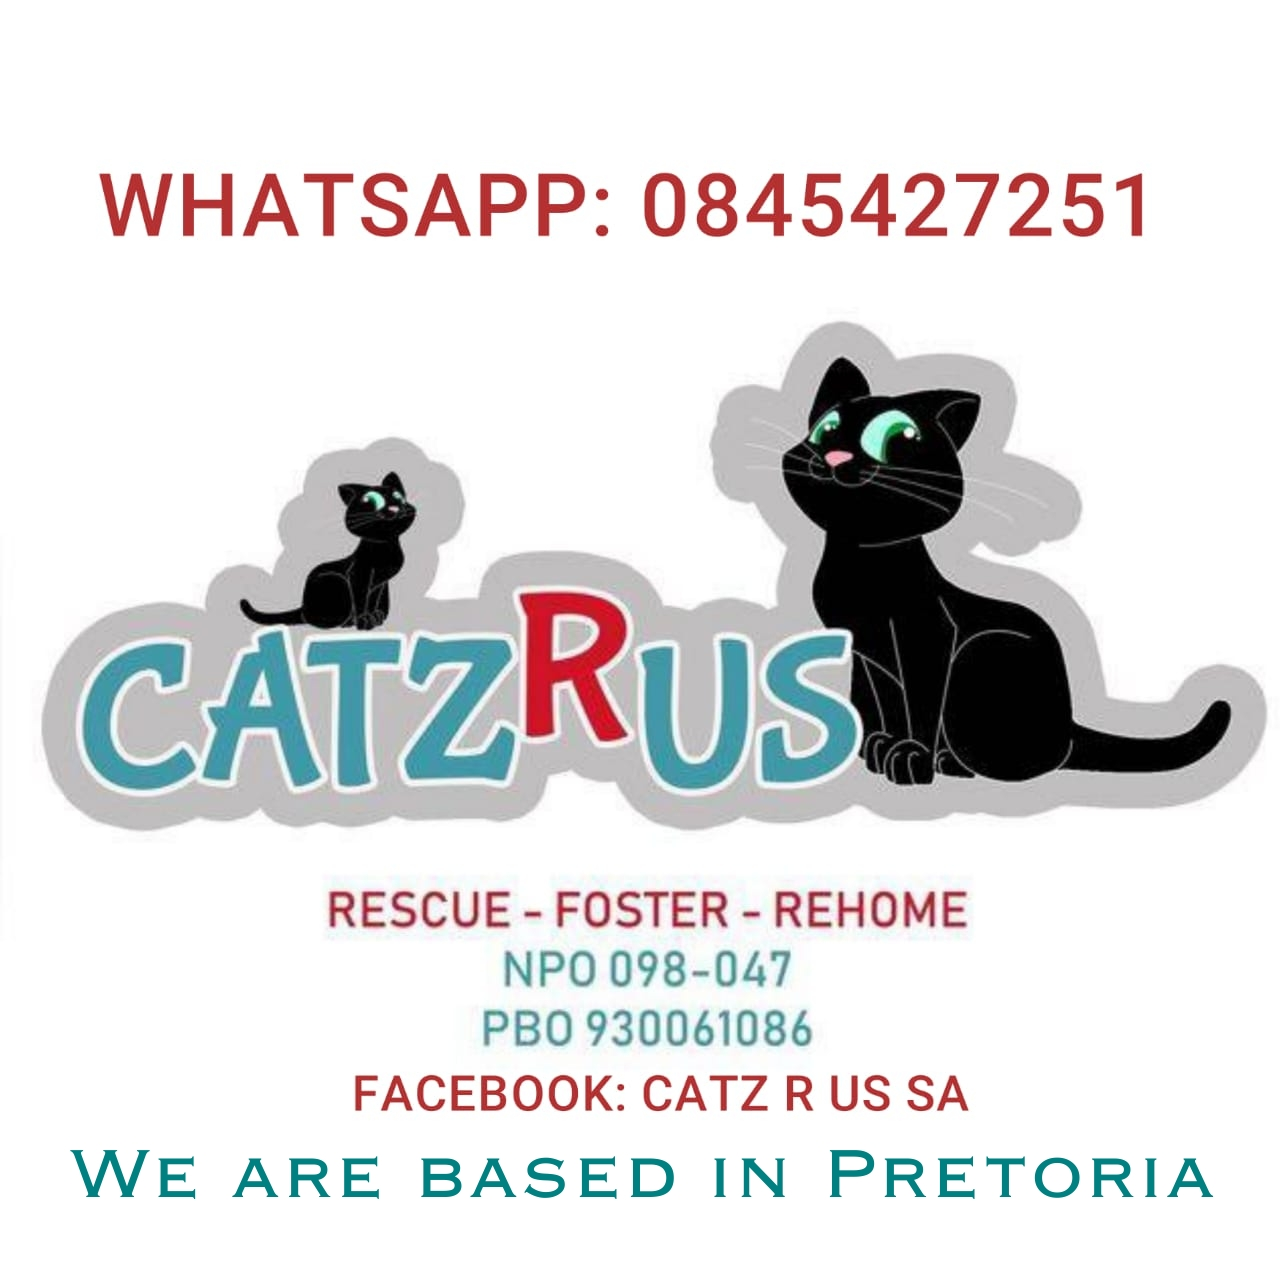 Free Kittens are not really free - not if you care enough to adopt responsibly. Please sterilise to reduce euthanasia of unwanted animals.